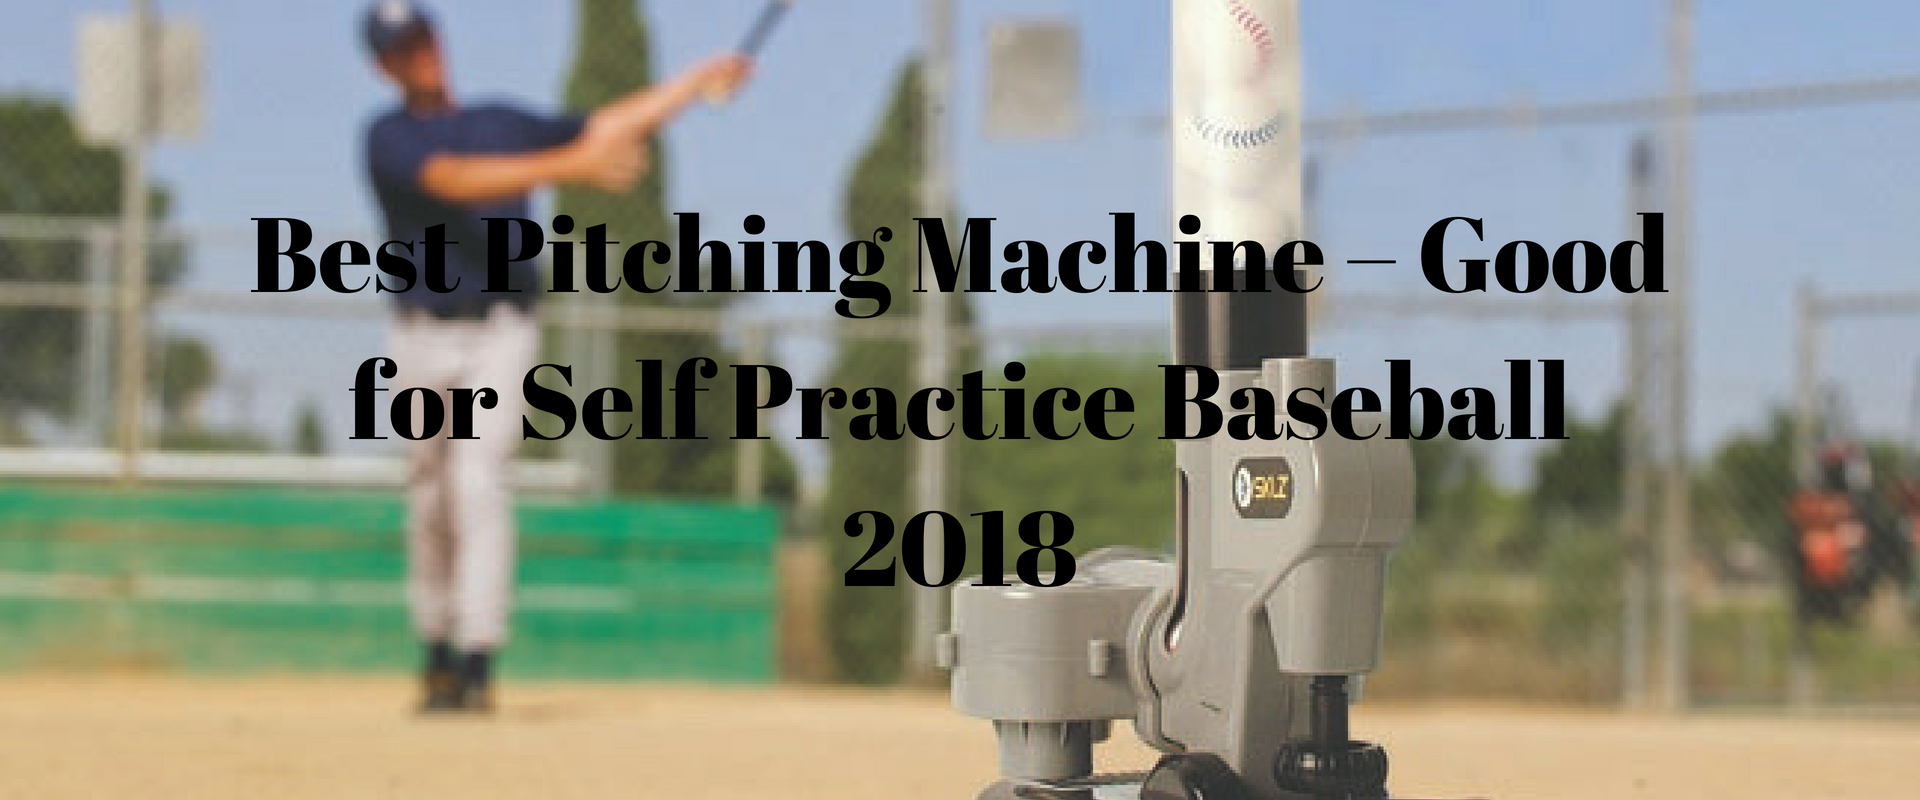 Best Pitching Machine